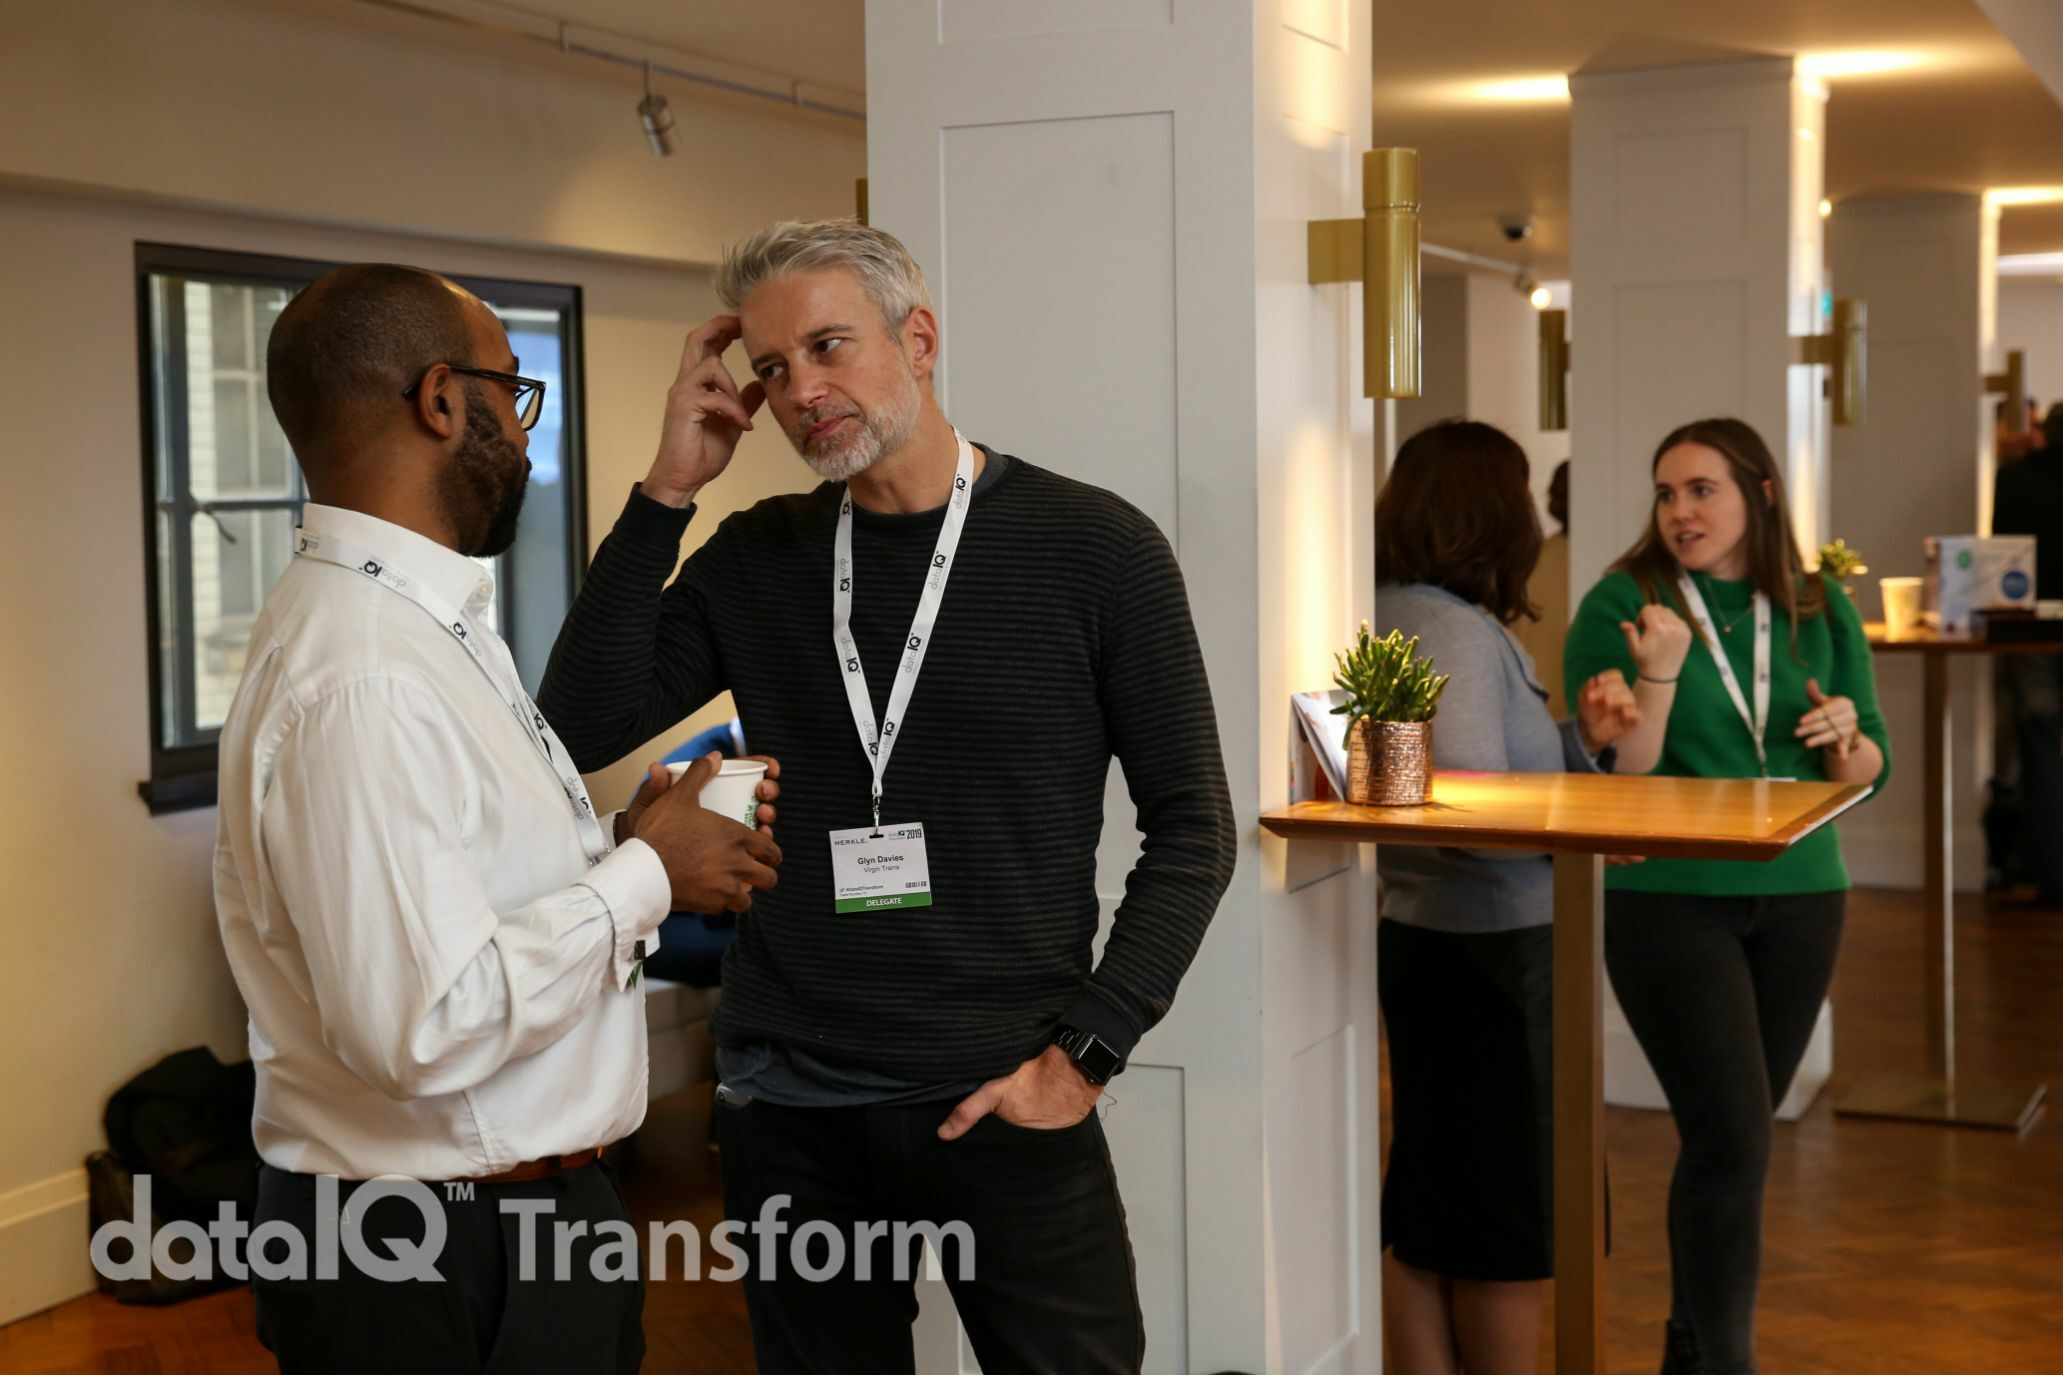 DataIQ Transform 2019 Image 62